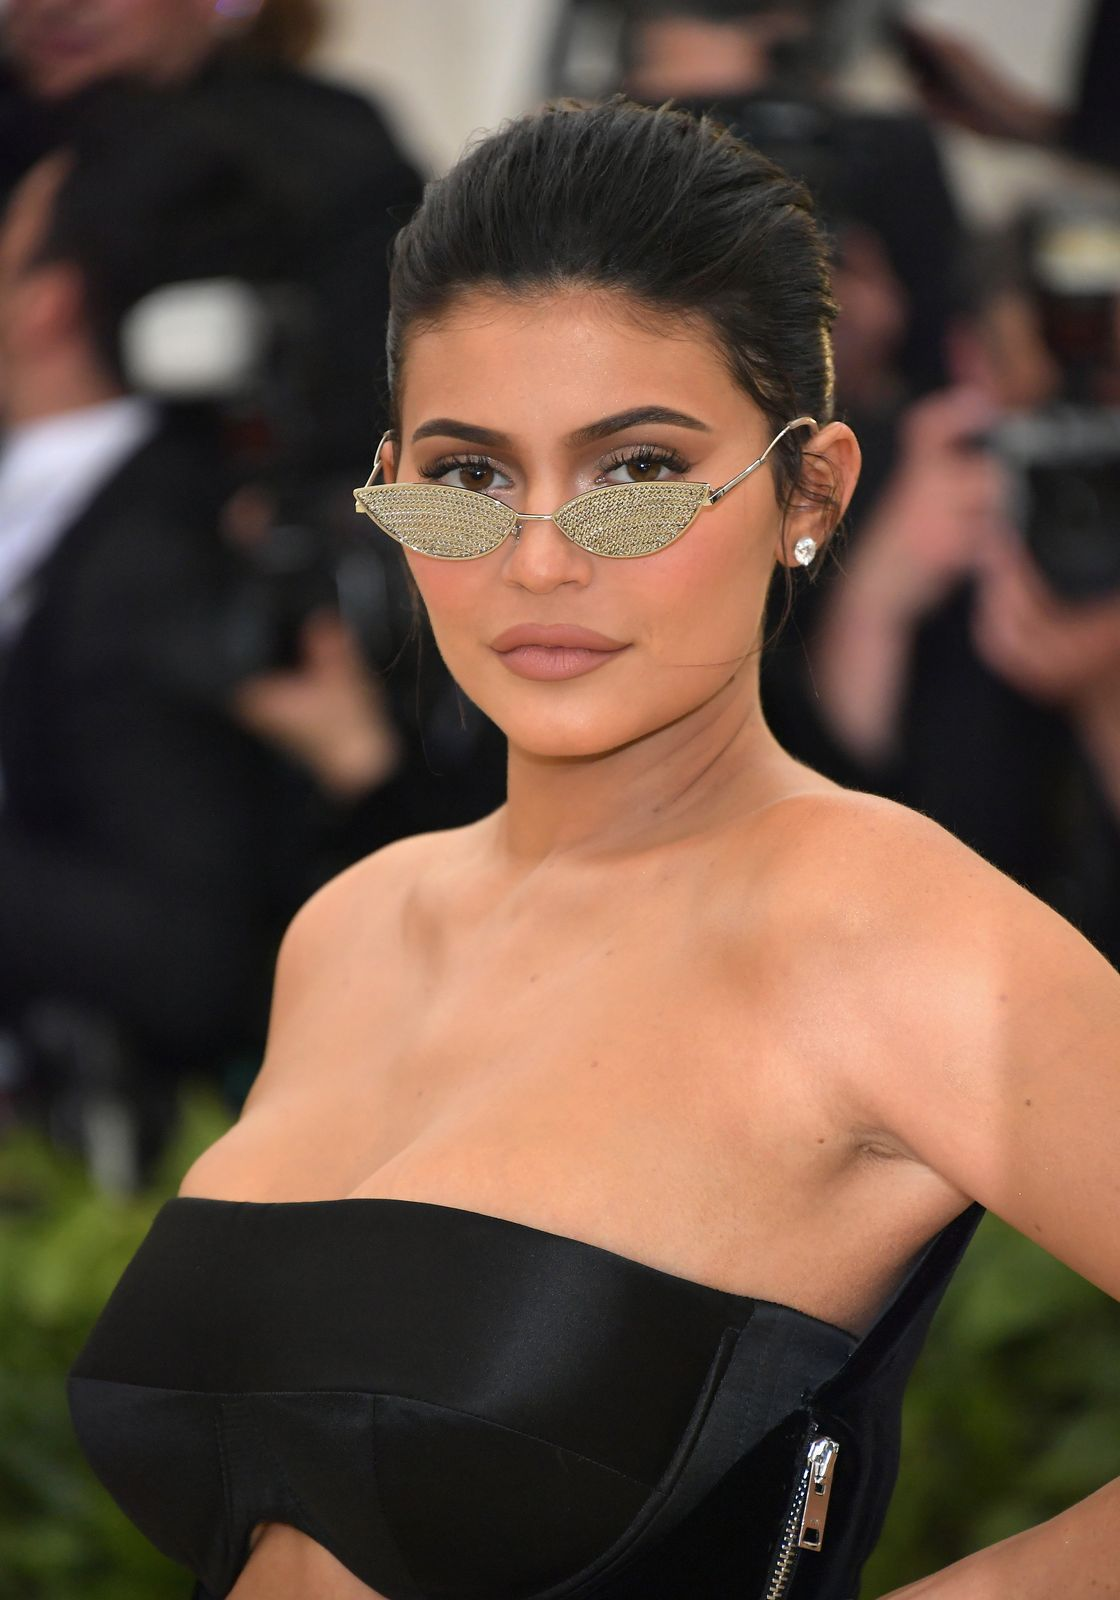 Kylie Jenner at the MET Gala in 2018 in New York City. | Source: Getty Images